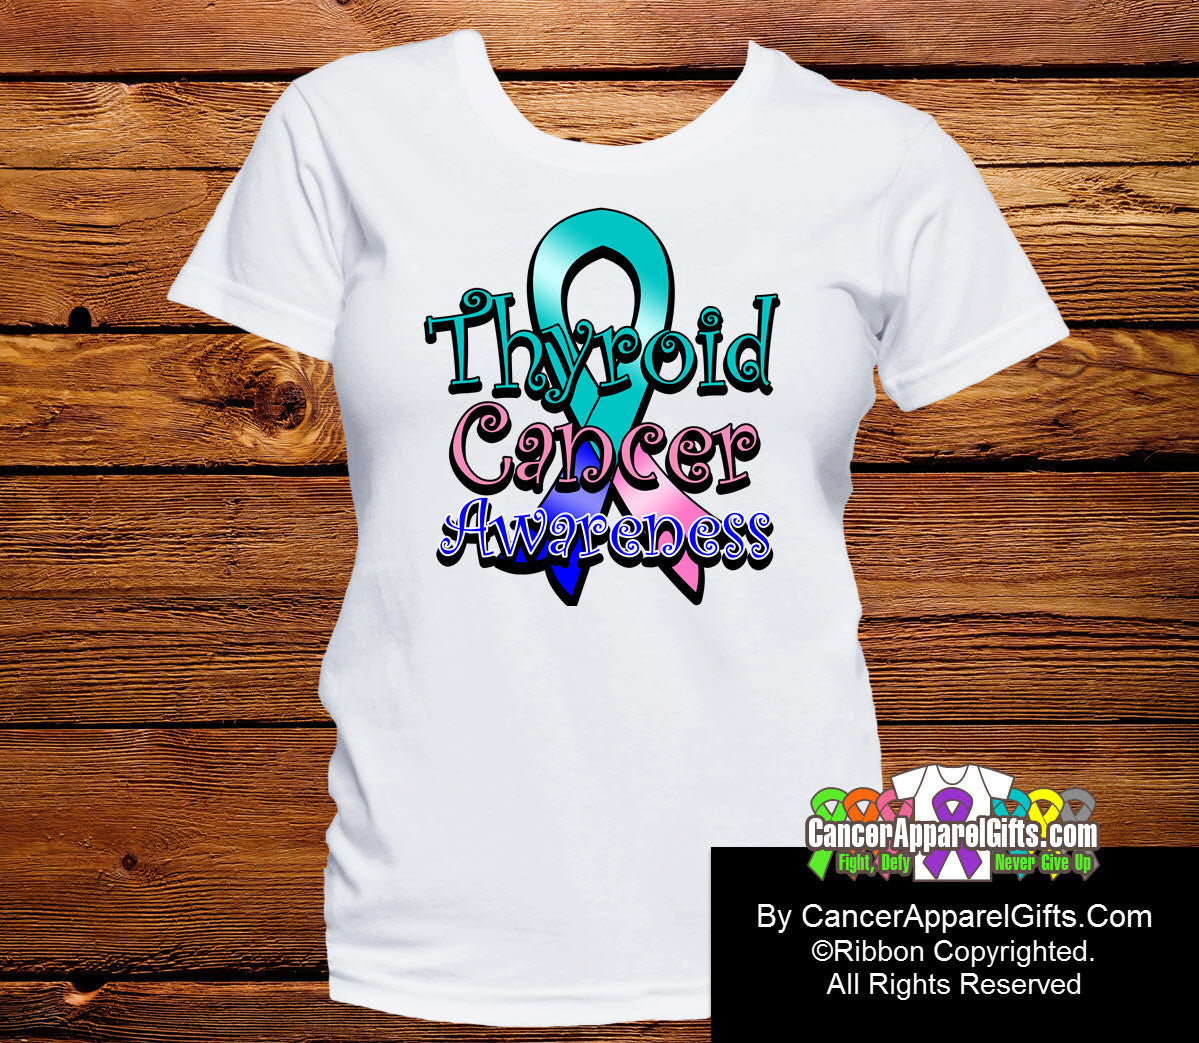 Thyroid Cancer Awareness Ribbon Shirts